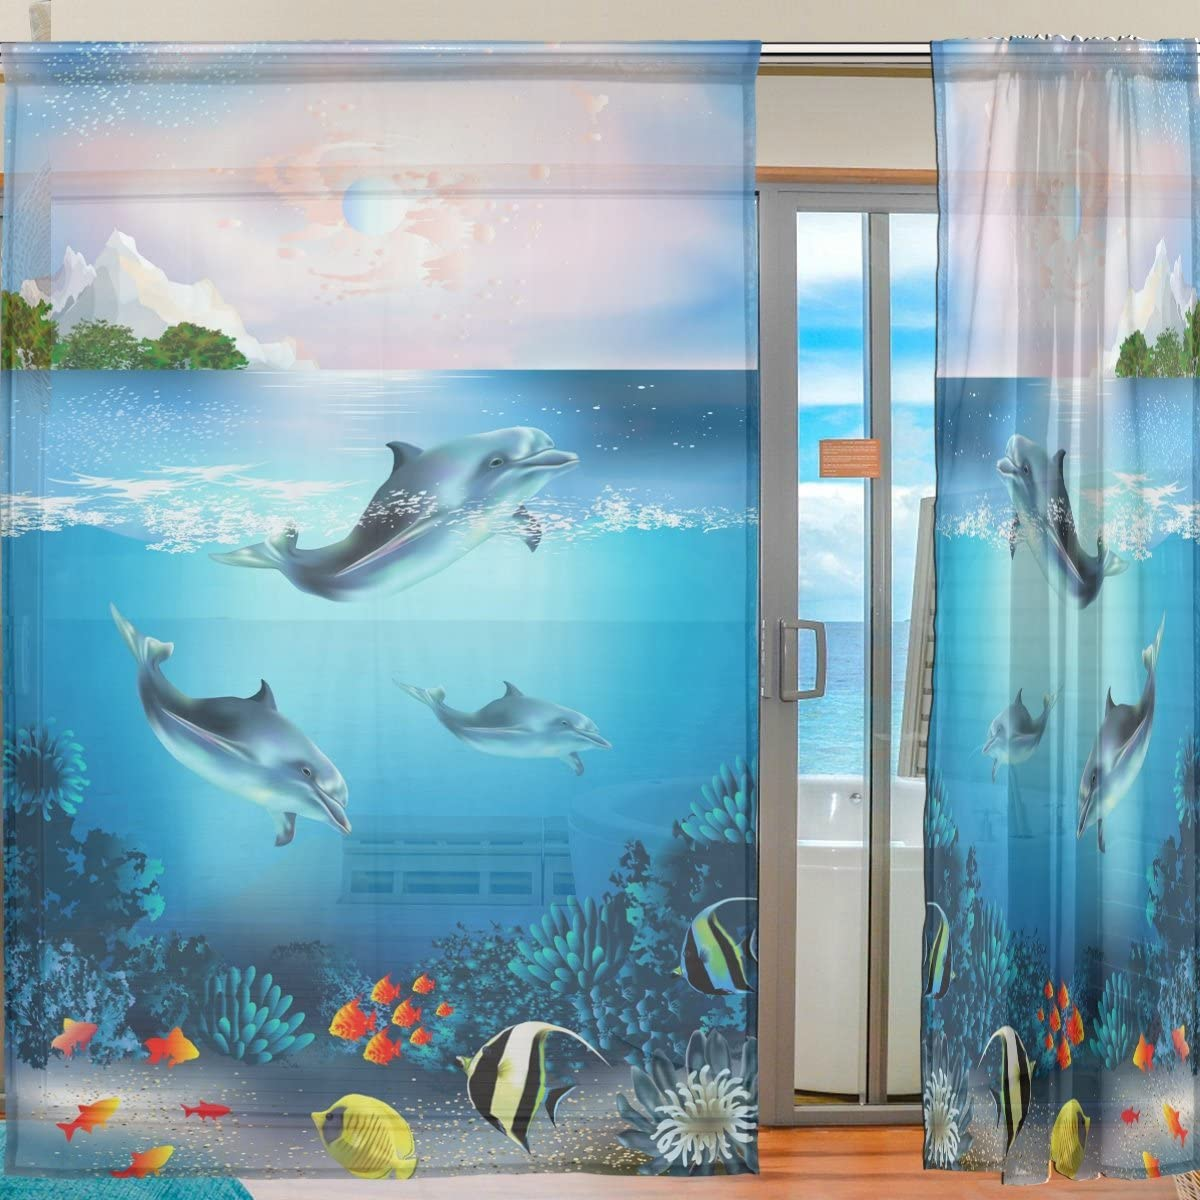 SEULIFE Window Sheer Curtain Ocean Sea Animal Dolphin Fish Voile Curtain Drapes for Door Kitchen Living Room Bedroom 55x78 inches 2 Panels